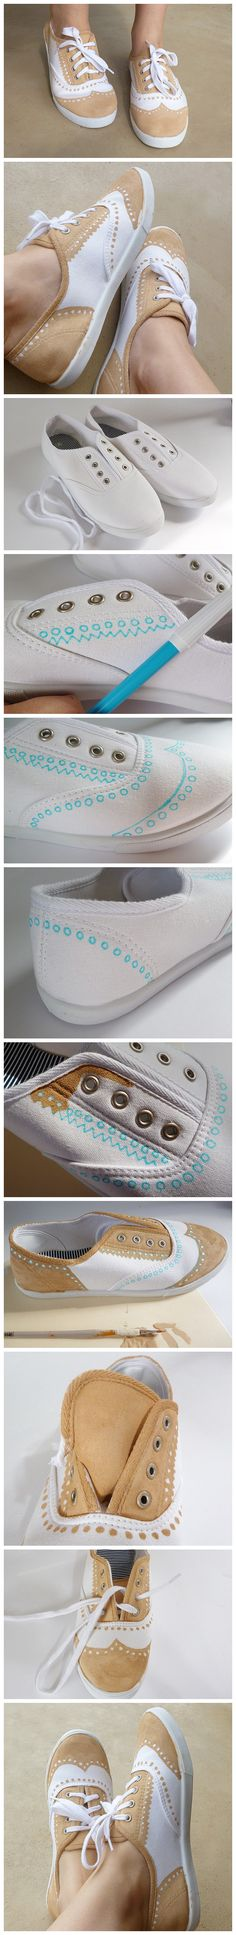 I have to do this! - DIY saddle shoes